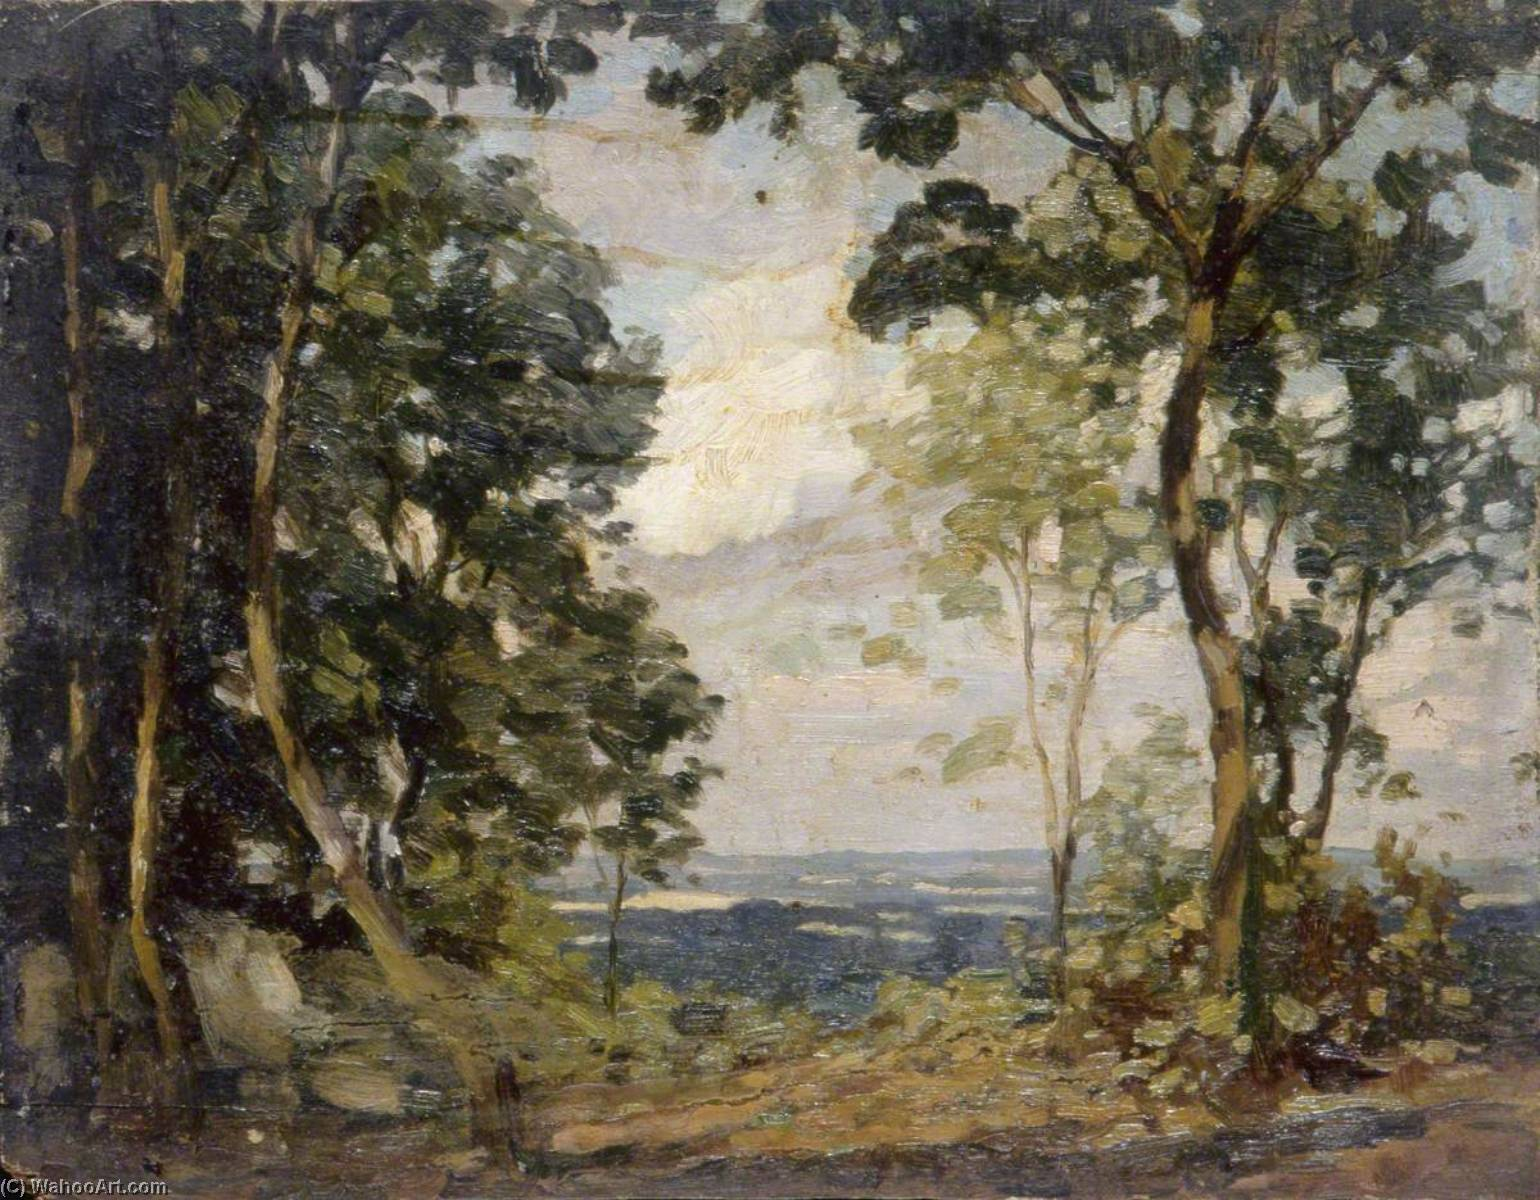 Woodland Clearing Overlooking Lower Land, 1930 by Gunning King | Museum Quality Reproductions | WahooArt.com